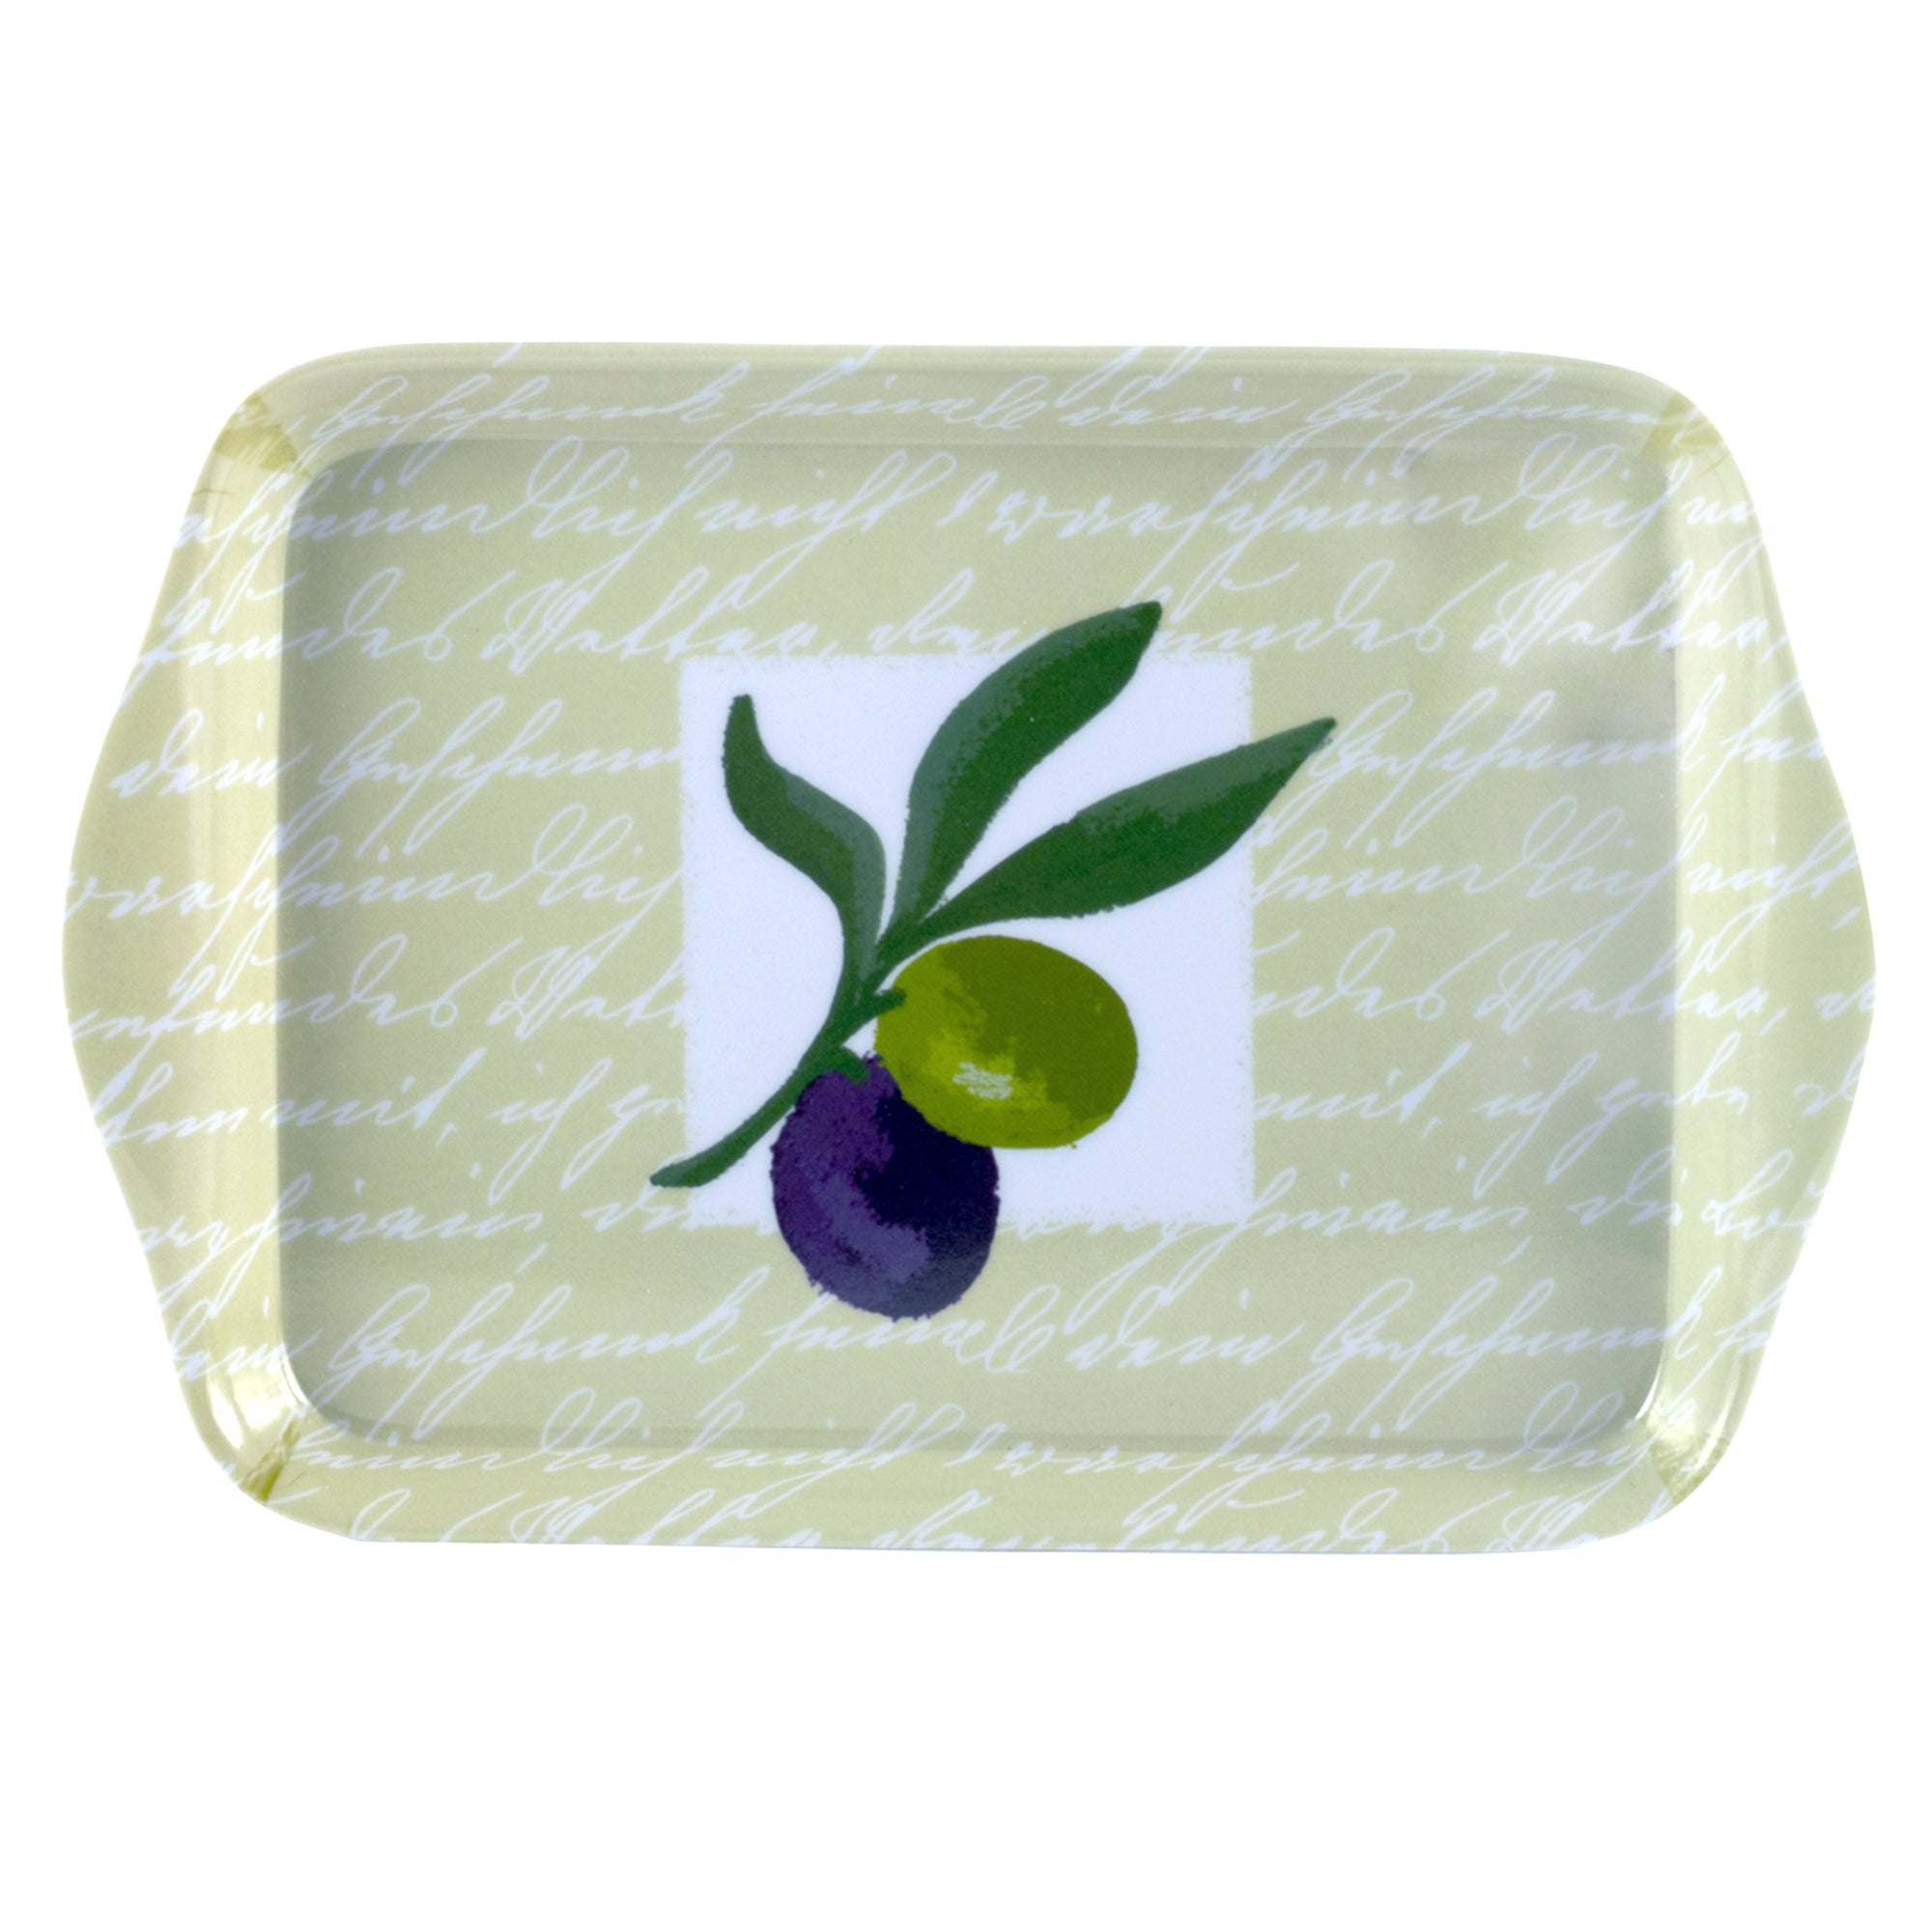 Olive Scatter tray